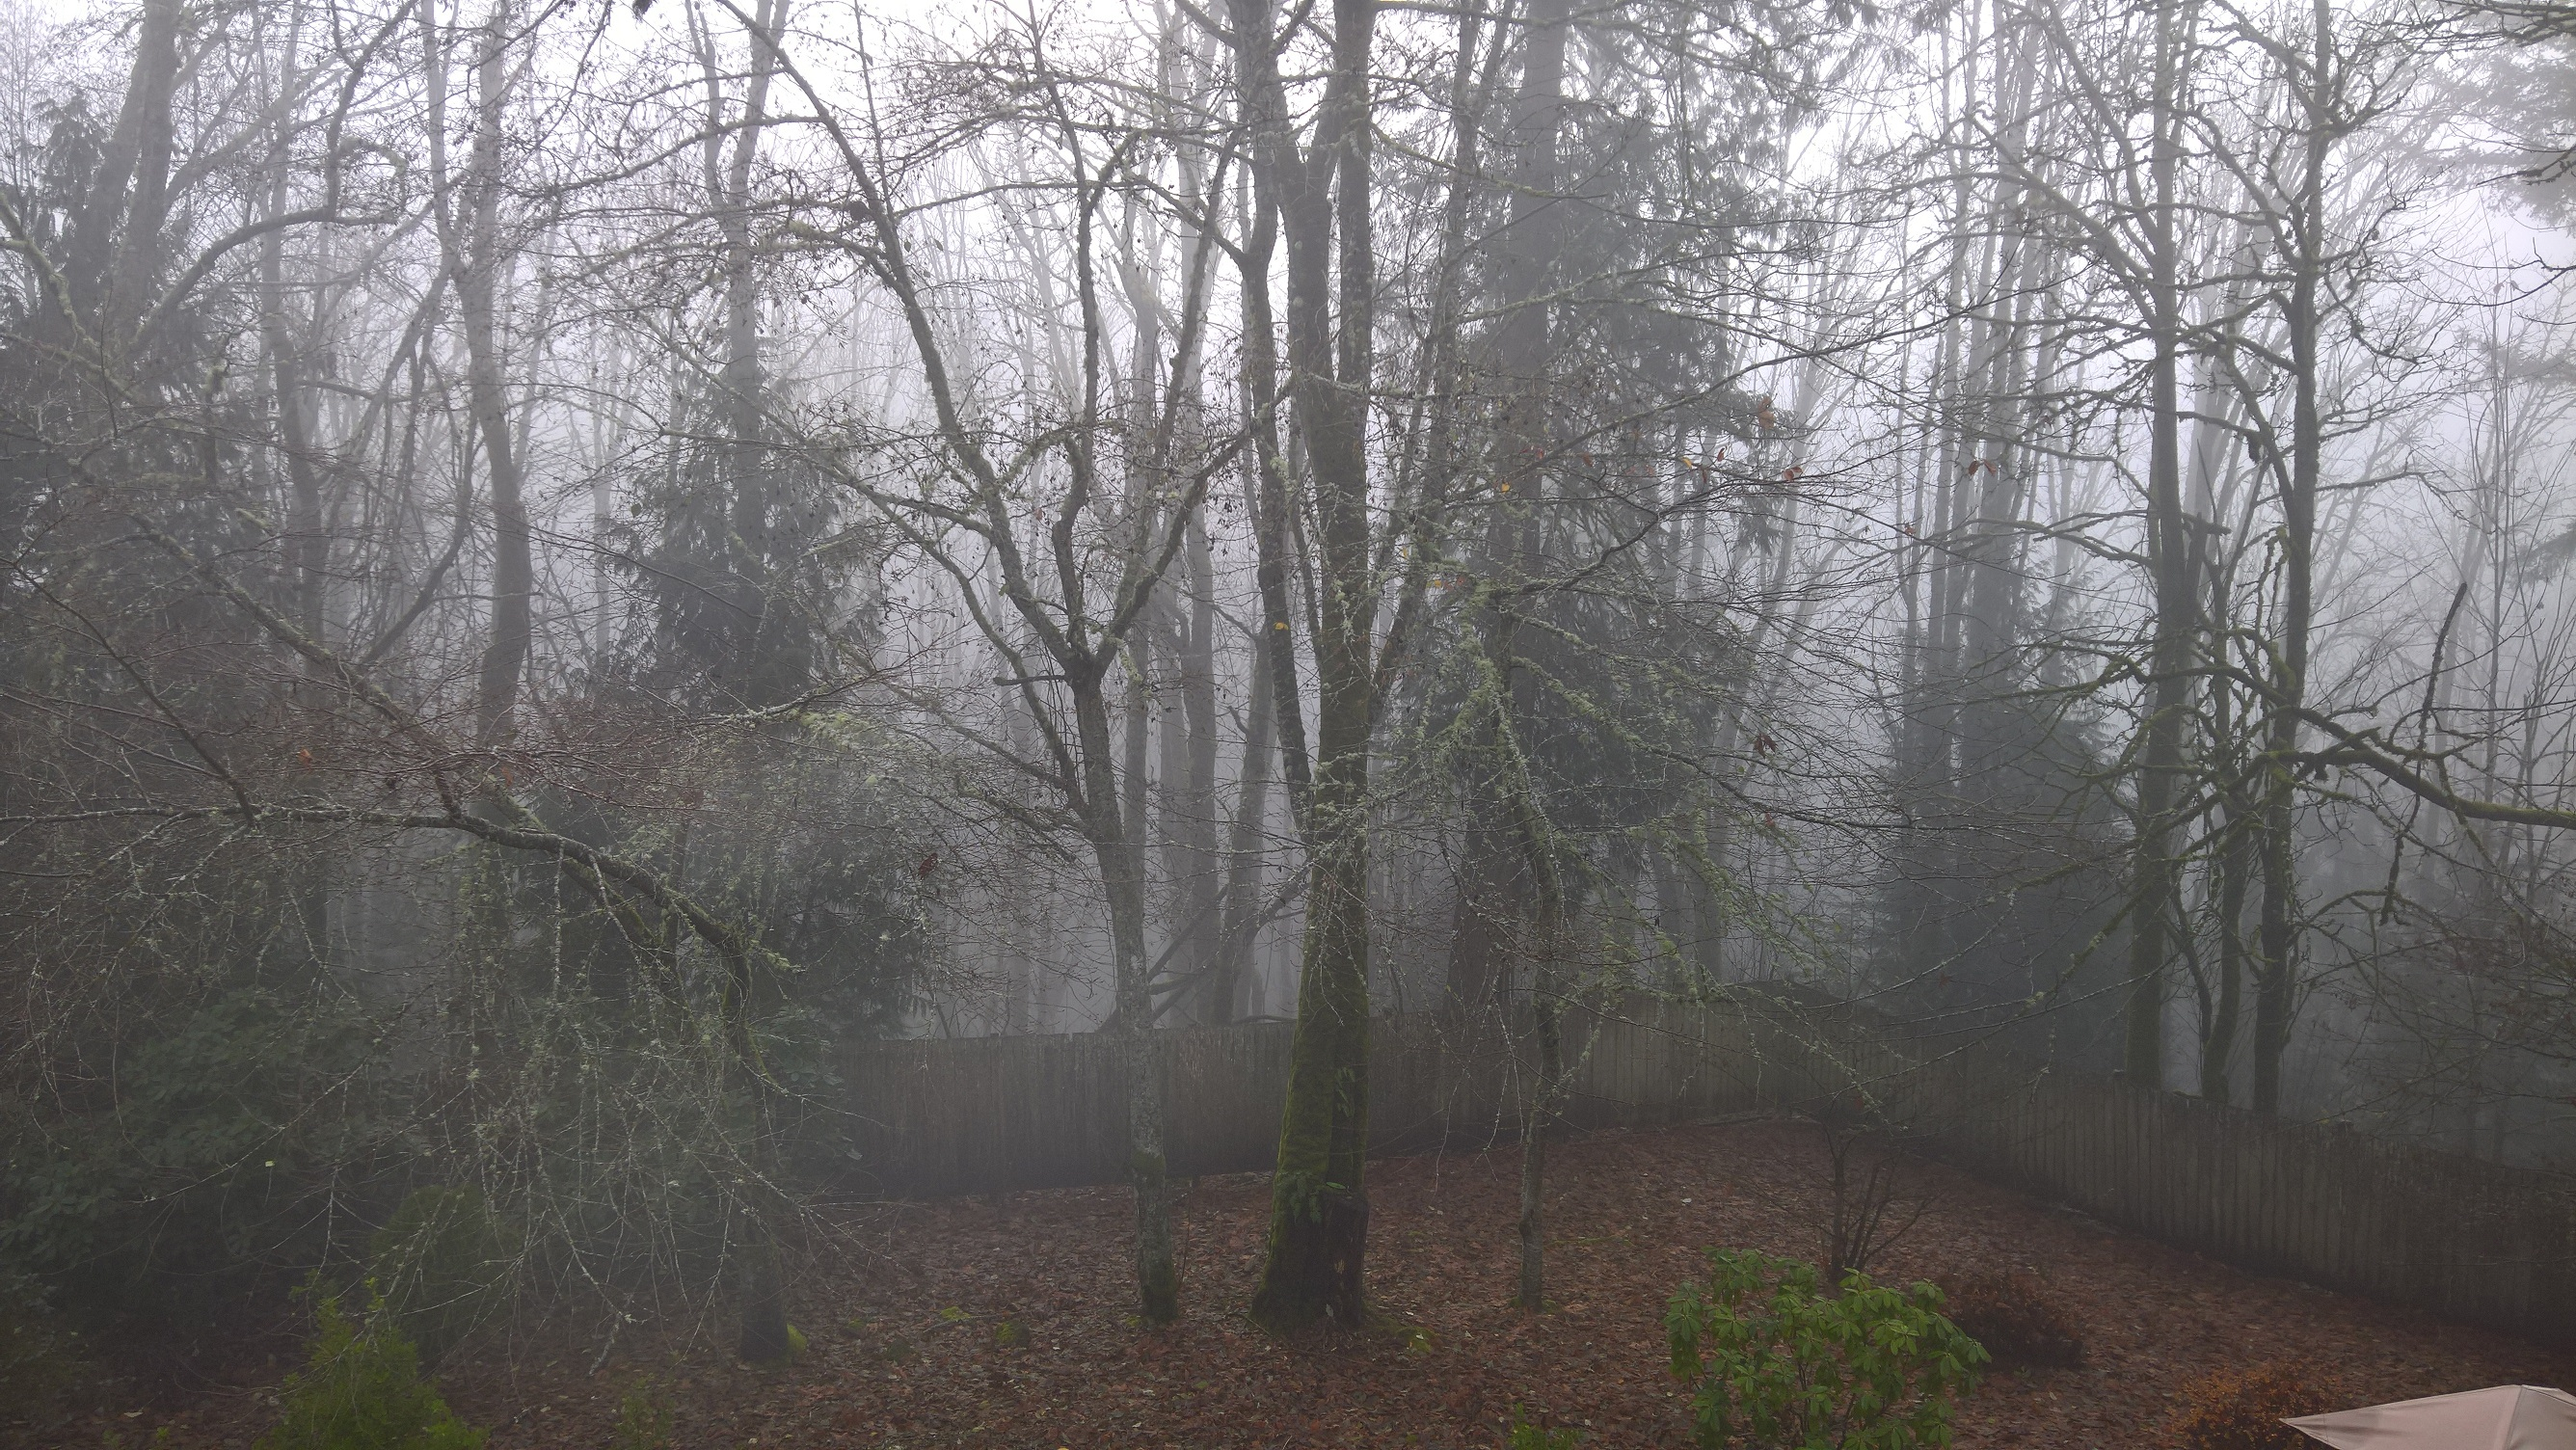 Misty backyard with leafless trees.